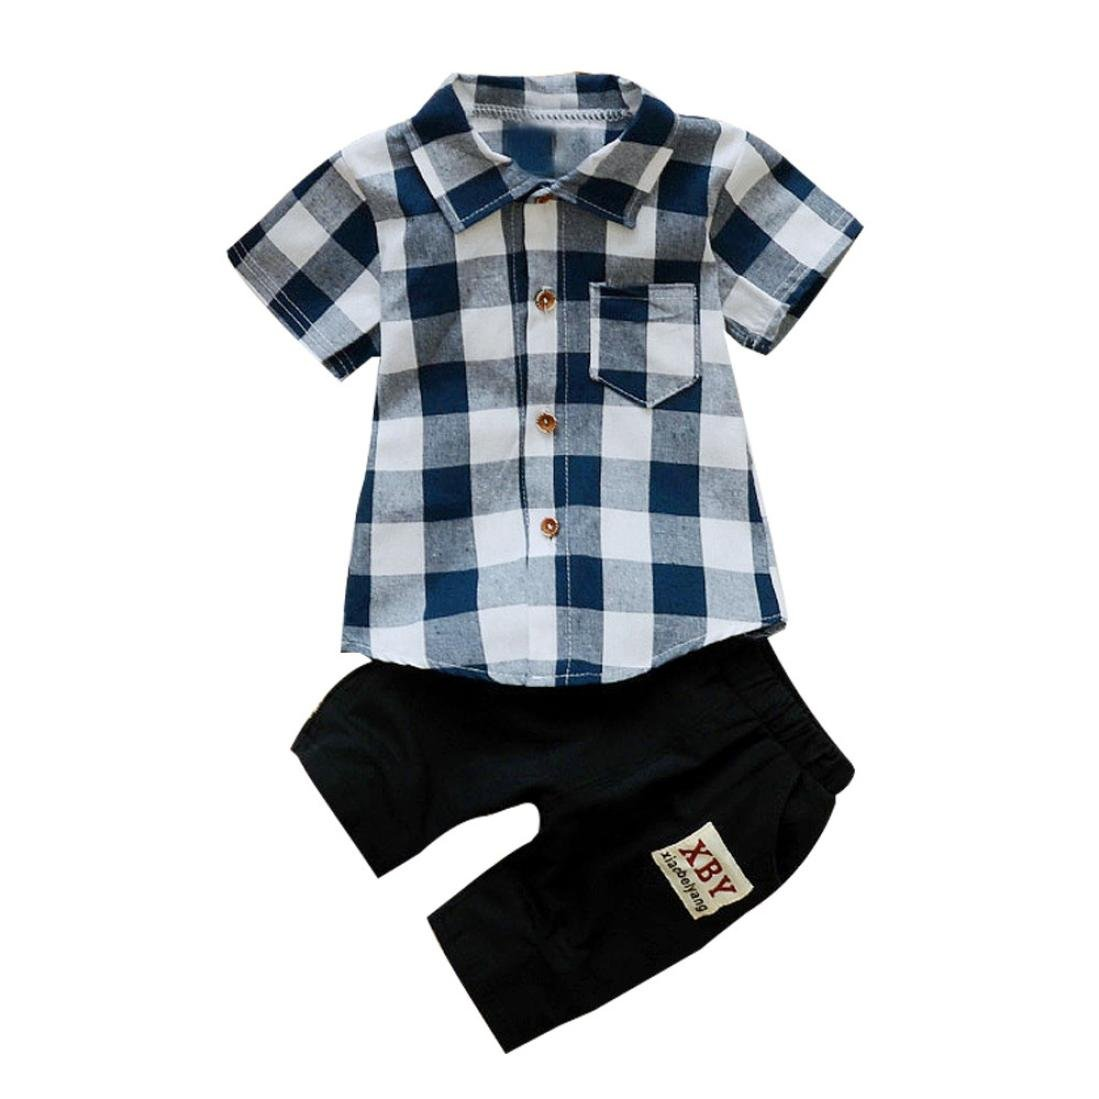 Residen Toddler 1-3T Boys Outfits Kids Plaid T Shirt Tops+Shorts Pants 2Pcs Outfits Clothing Set